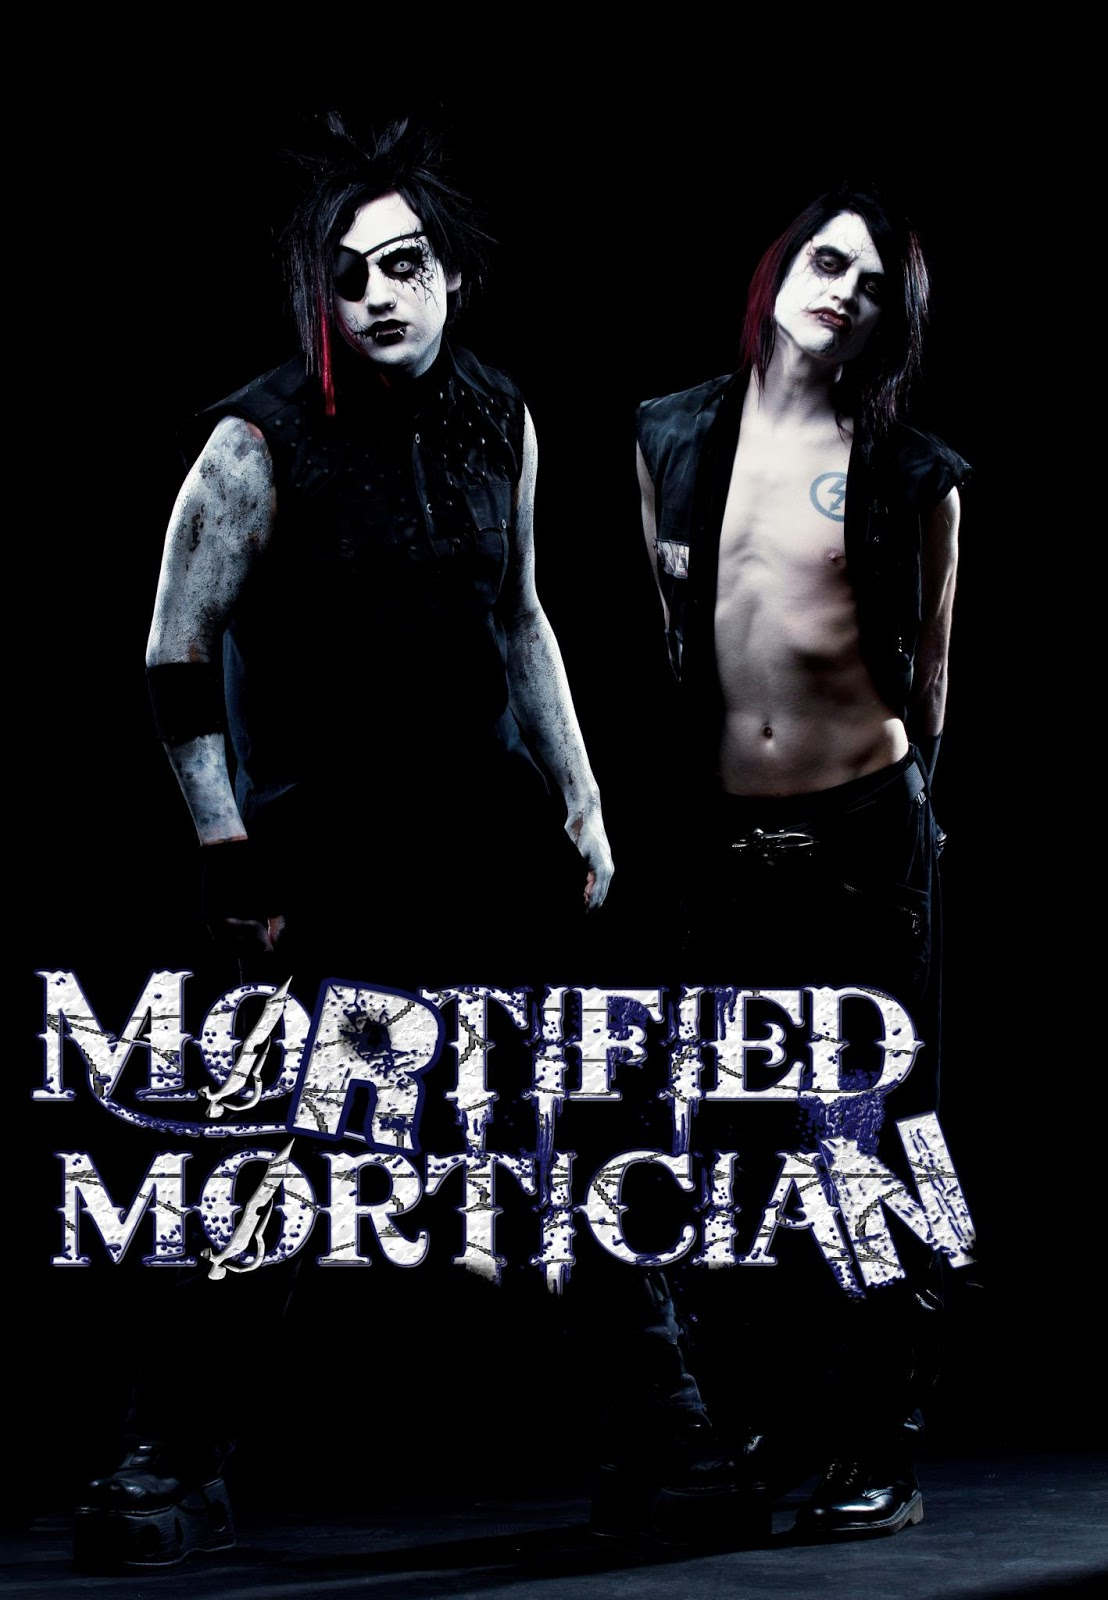 mortified mortician out on tour wednesday concert photos mortified mortician was founded in early 2012 by kyle castronovo rhythm lead guitar and matt jefferson vocals when castronovo struck by inspiration